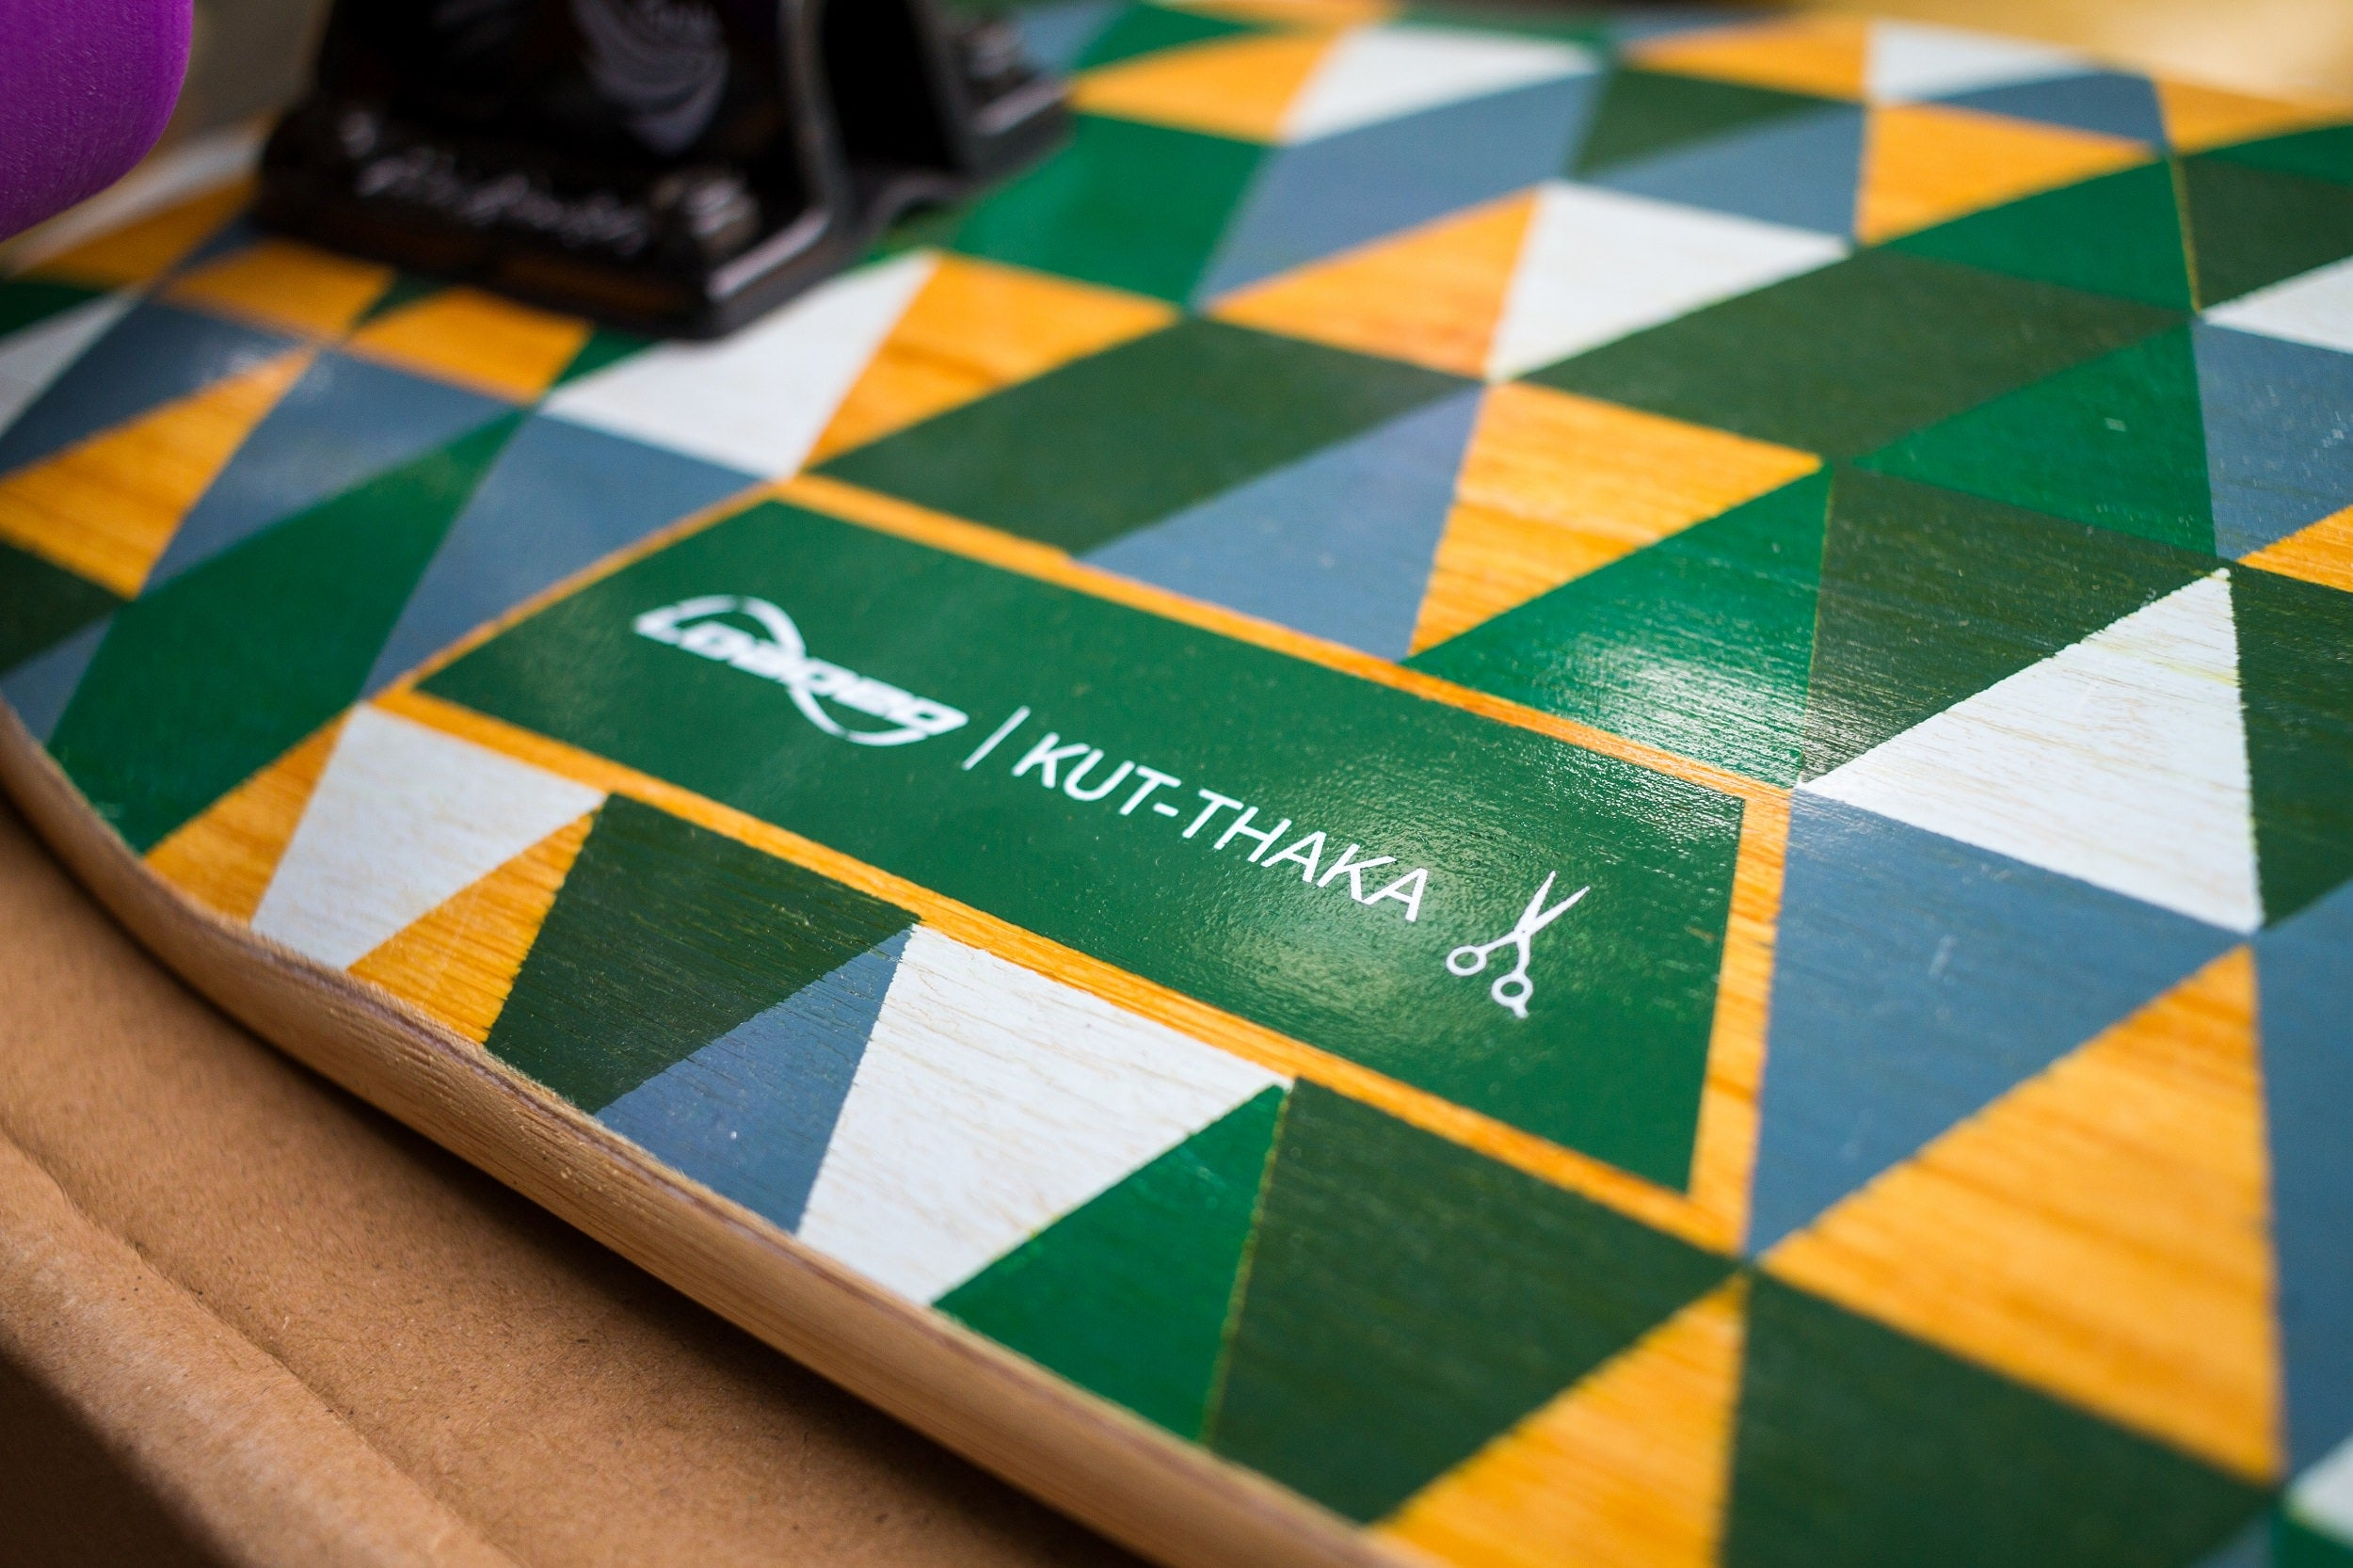 Loaded Kut-thaka Skateboard Name Close Up